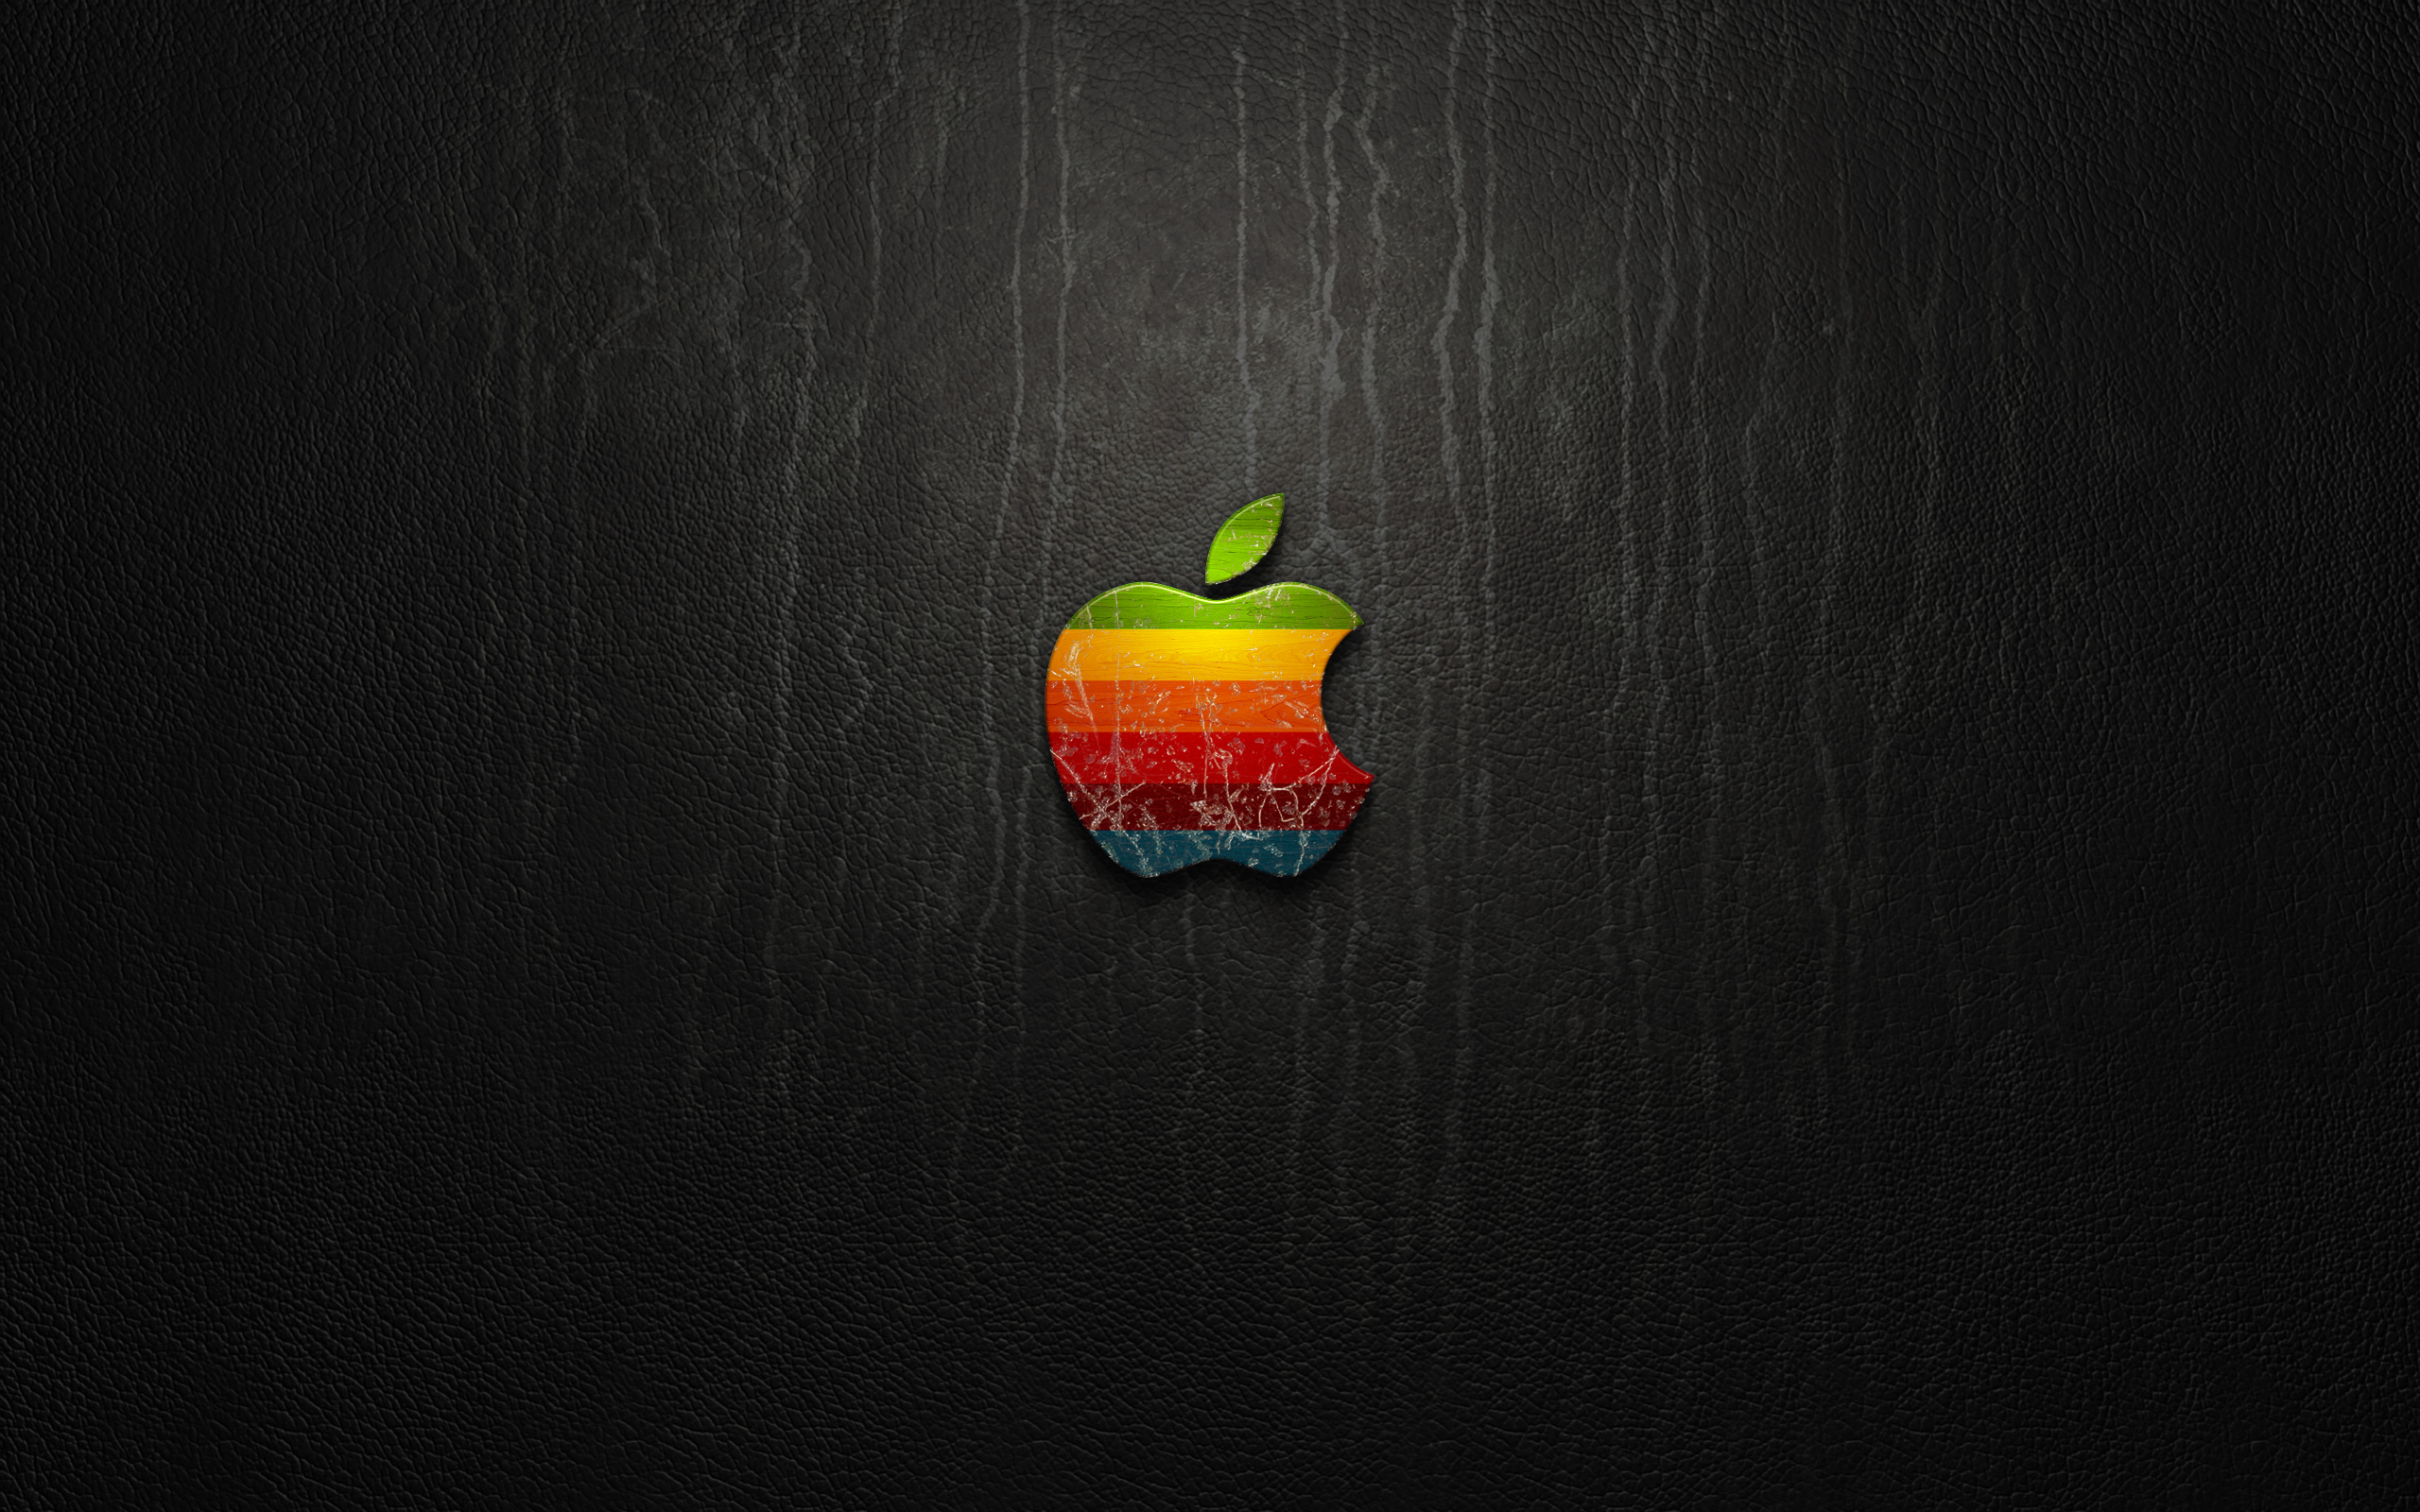 Apple logo hd Wallpaper